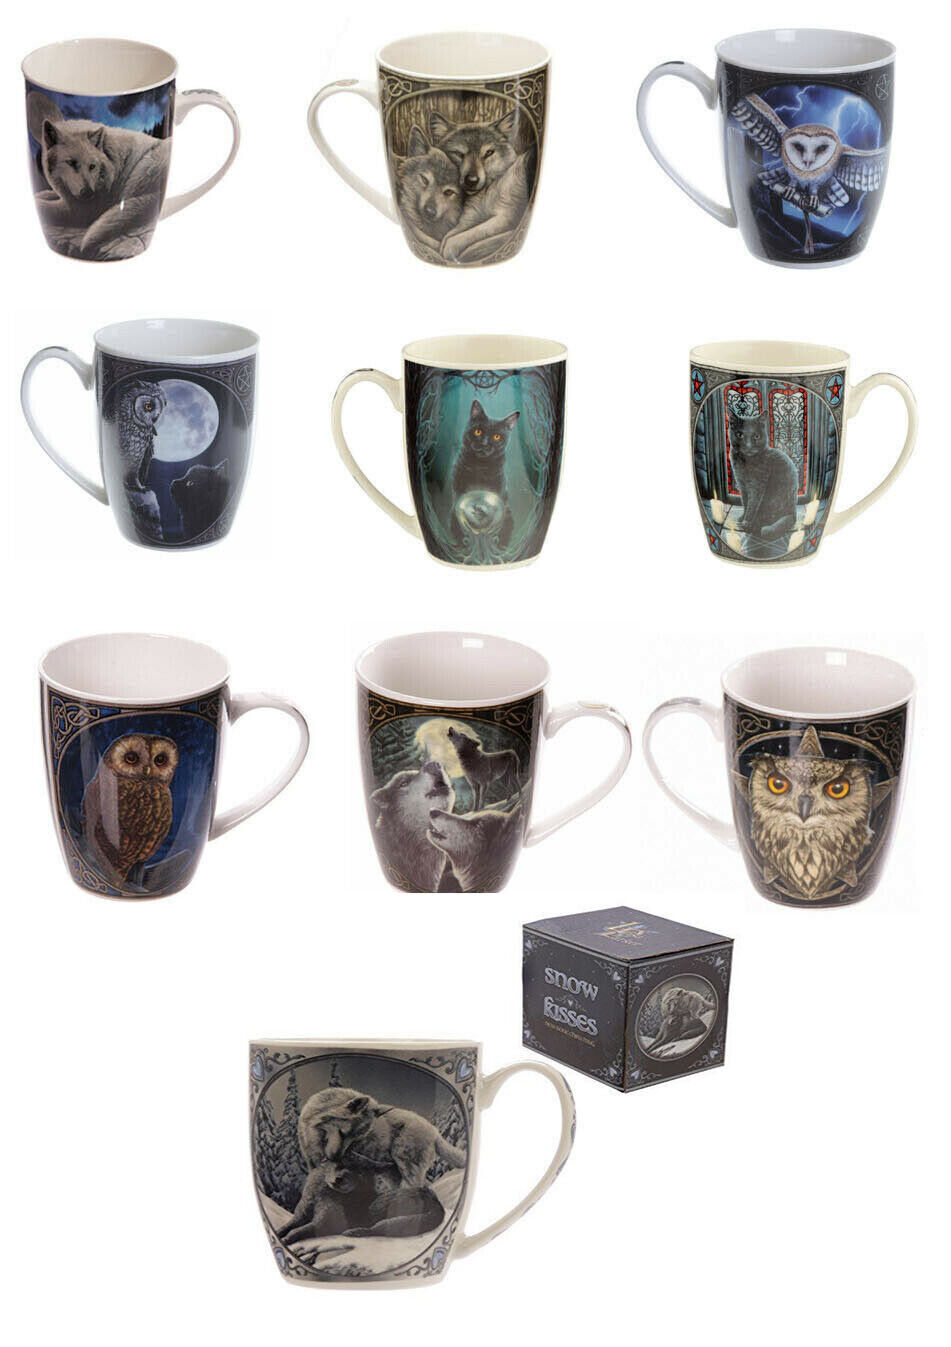 Details about Lisa Parker Design Mugs Novelty Bone China Tea Coffee Cup Fantasy Gift Boxed New